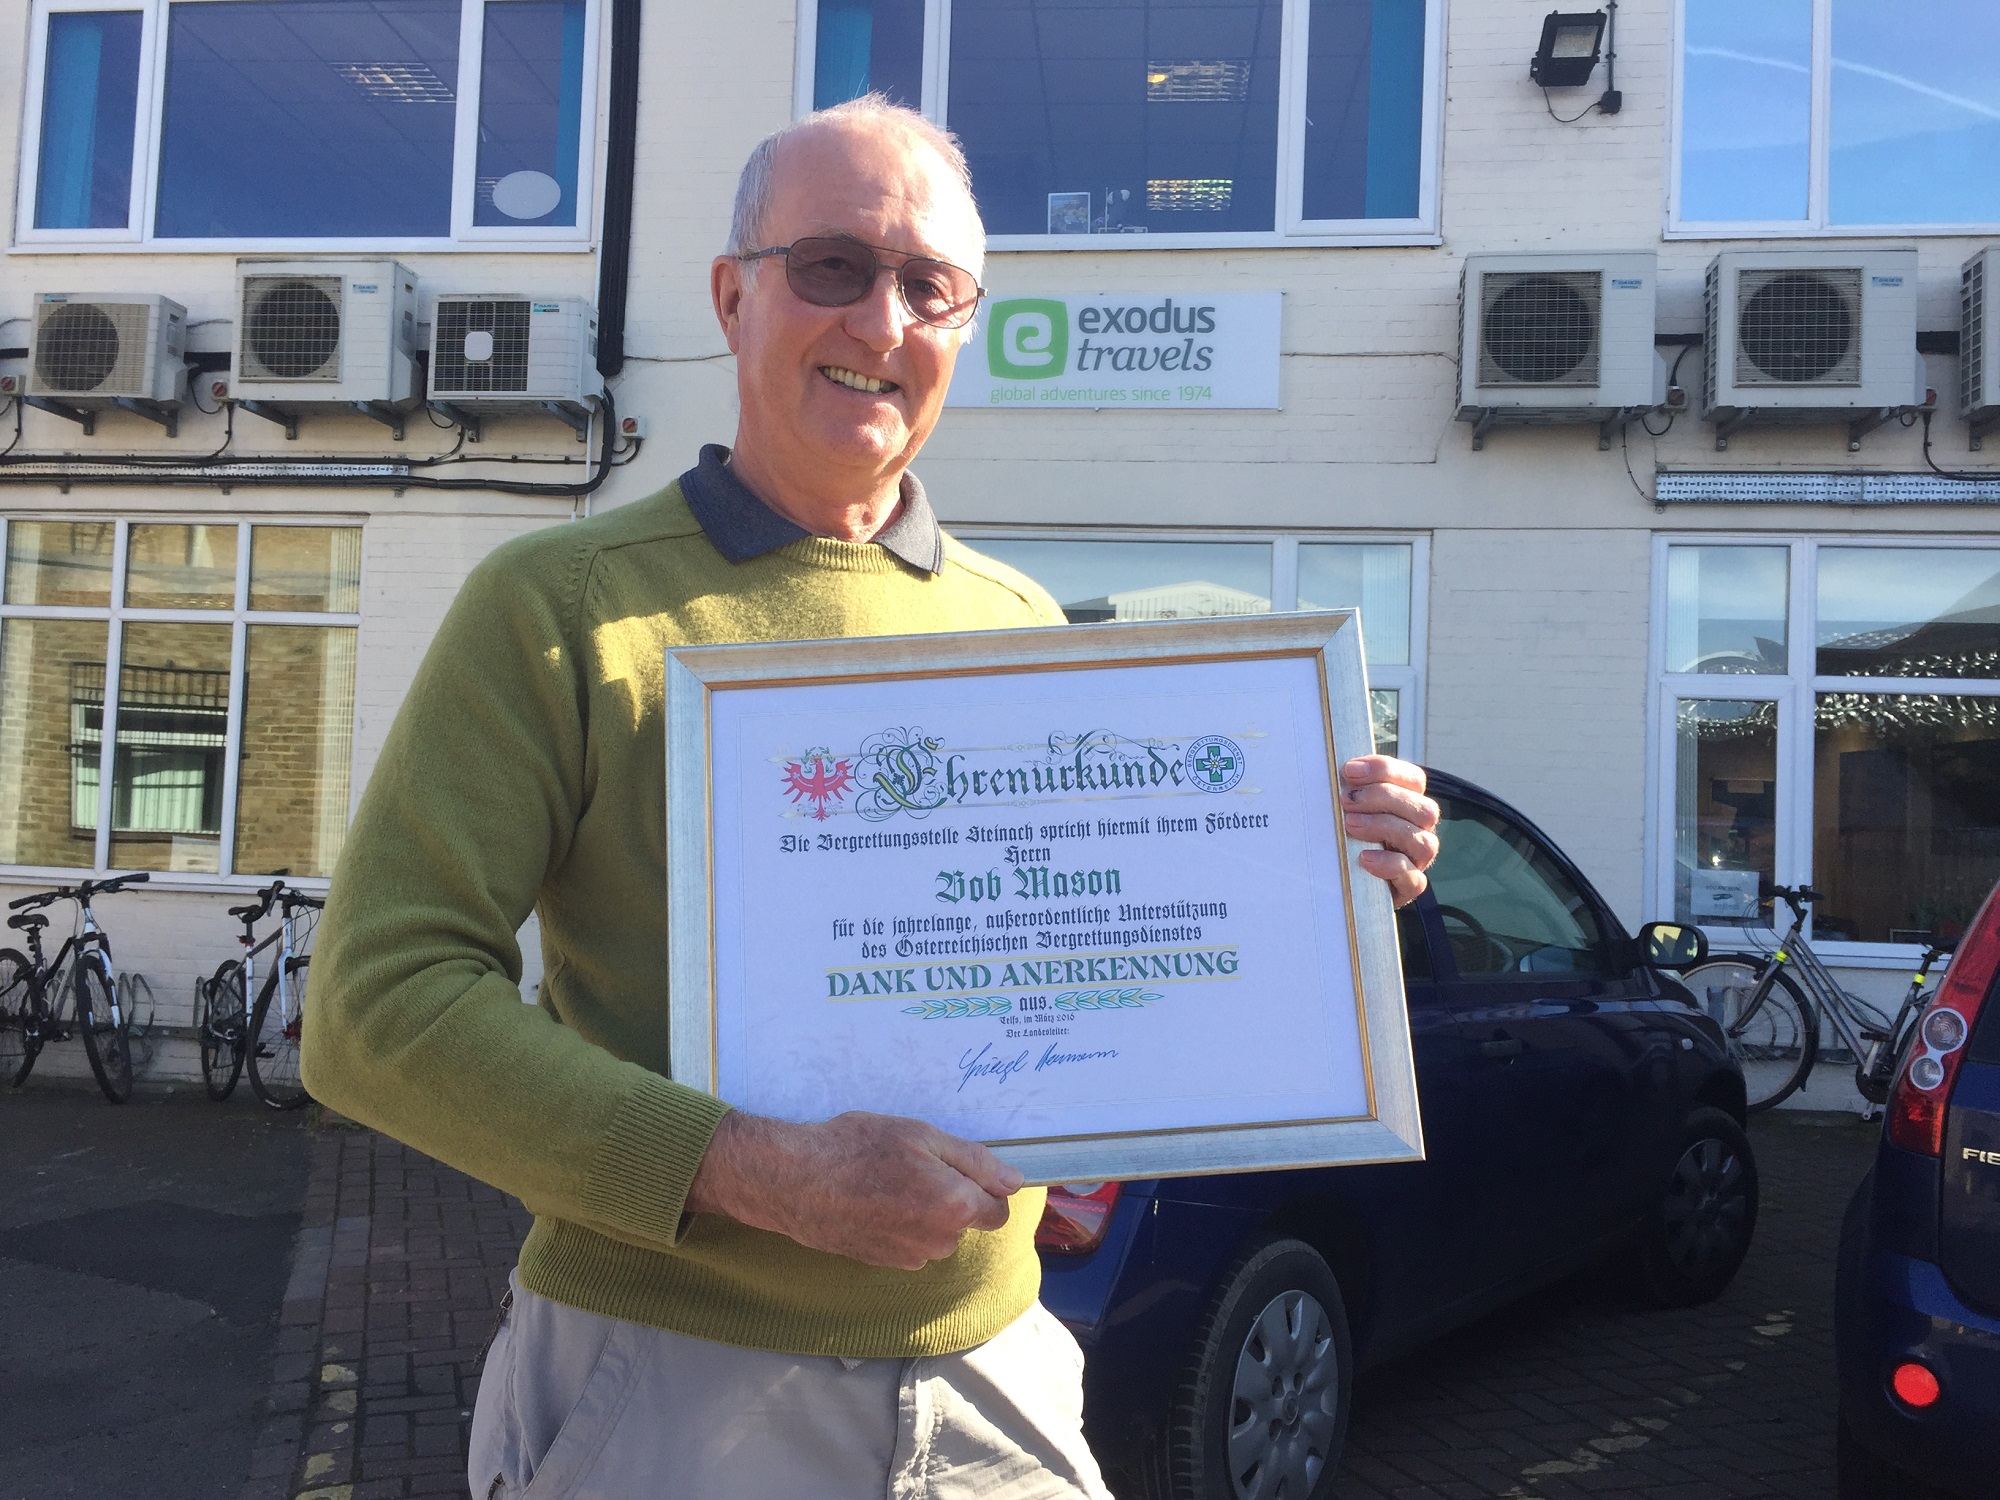 Bob at the Exodus office with his certificate